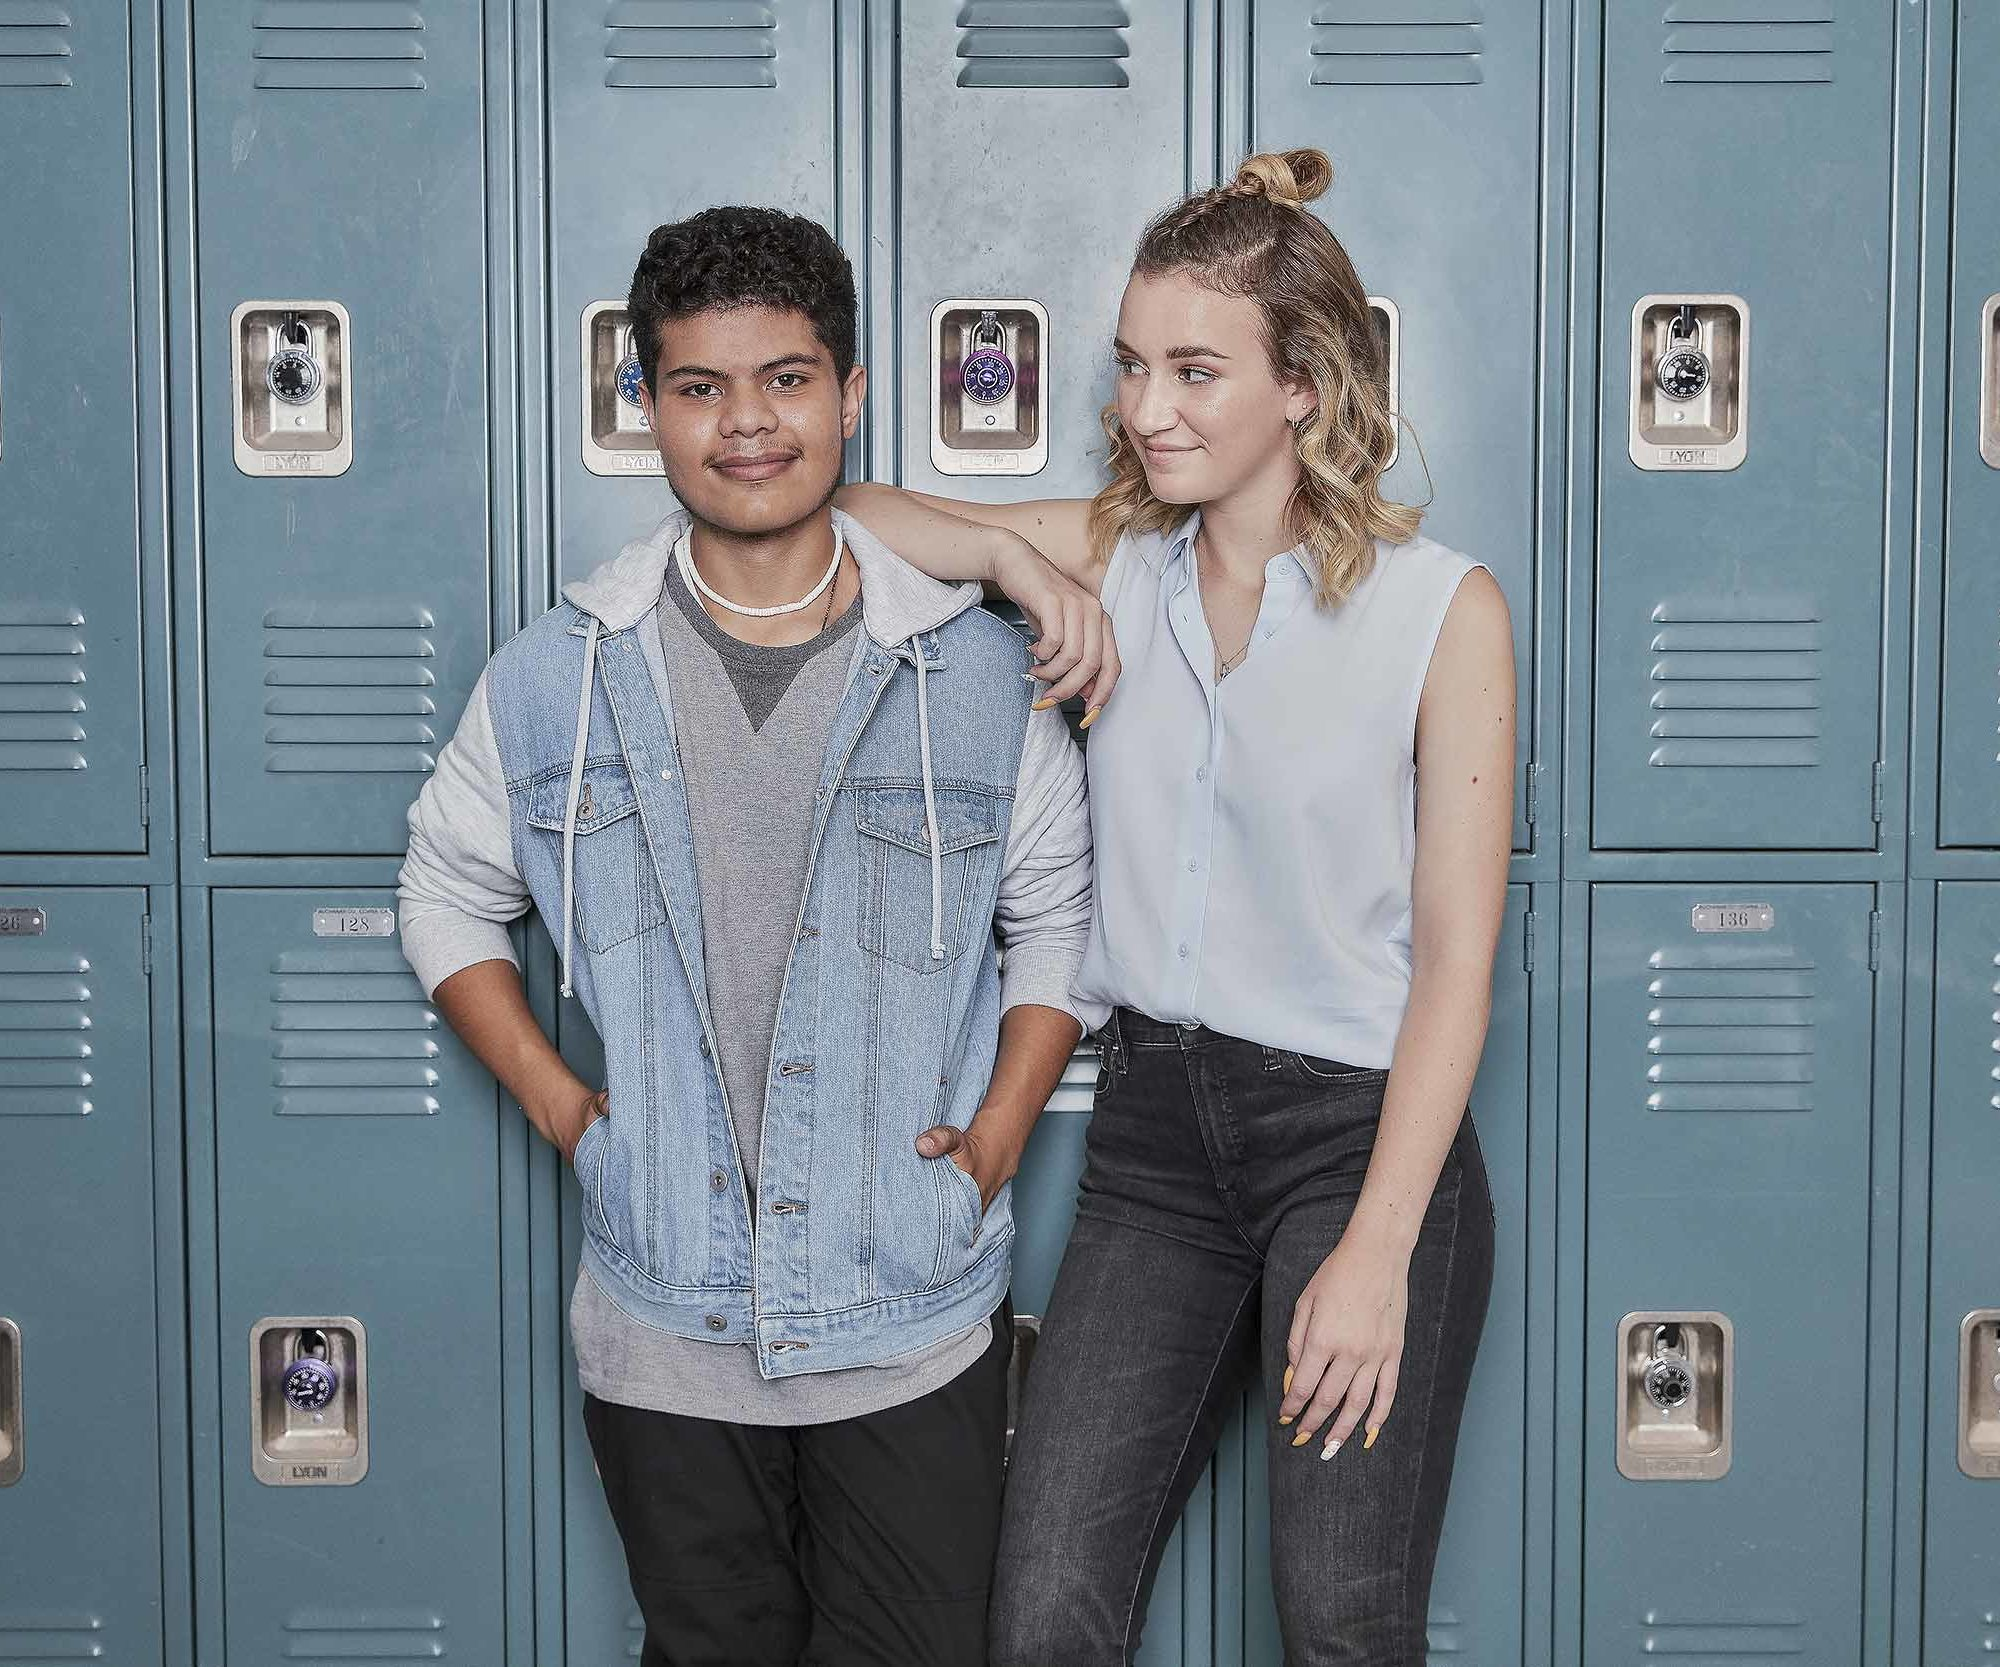 Two students standing in front of lockers.